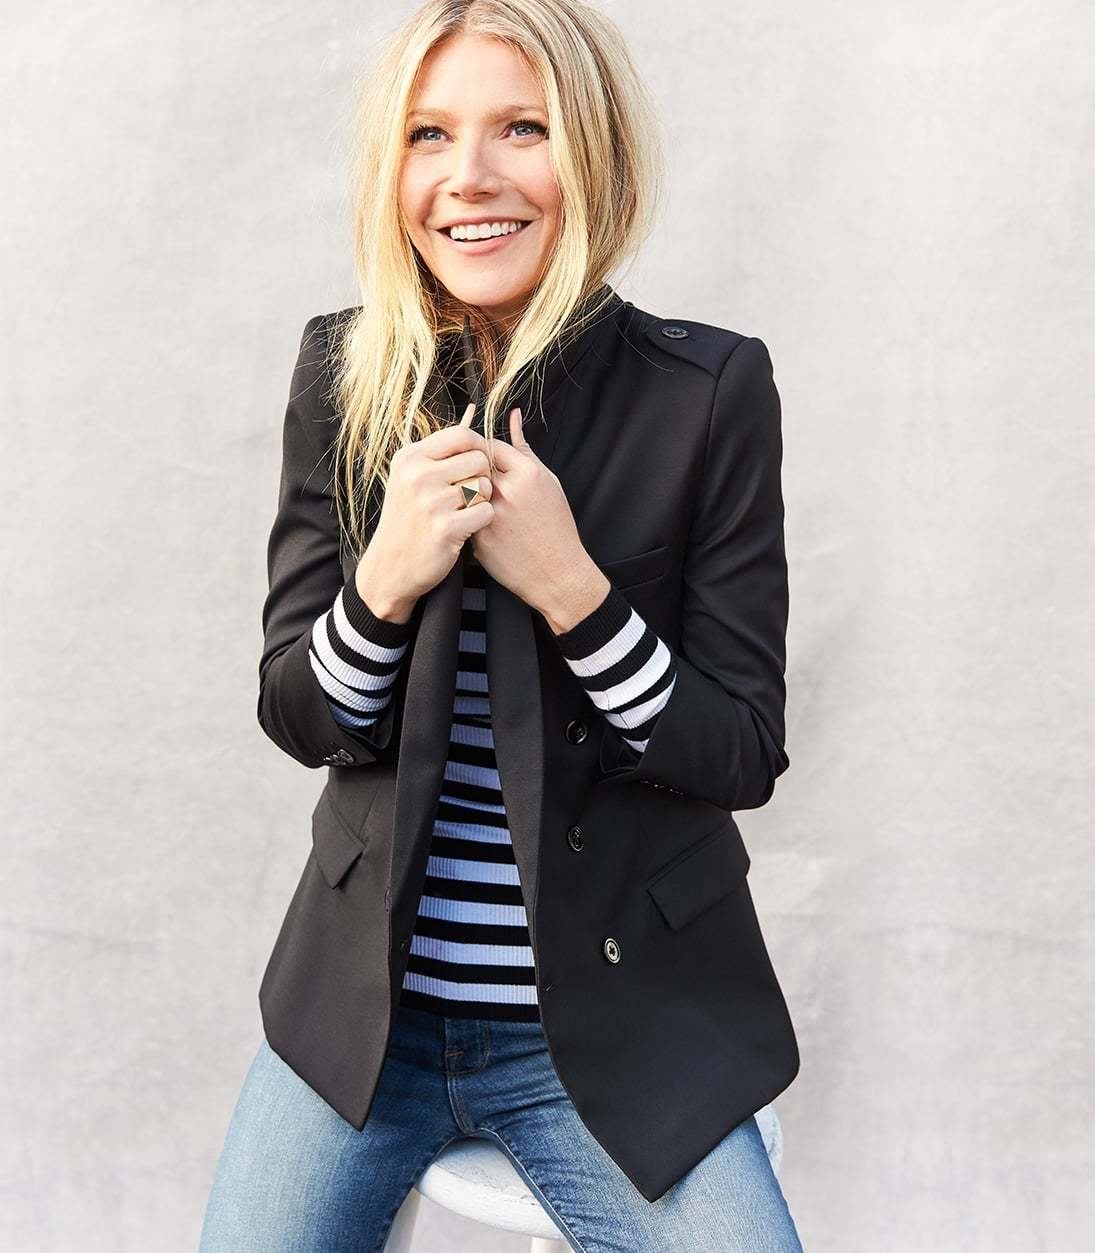 10 Ethical Fashion Brands Owned By Celebrities